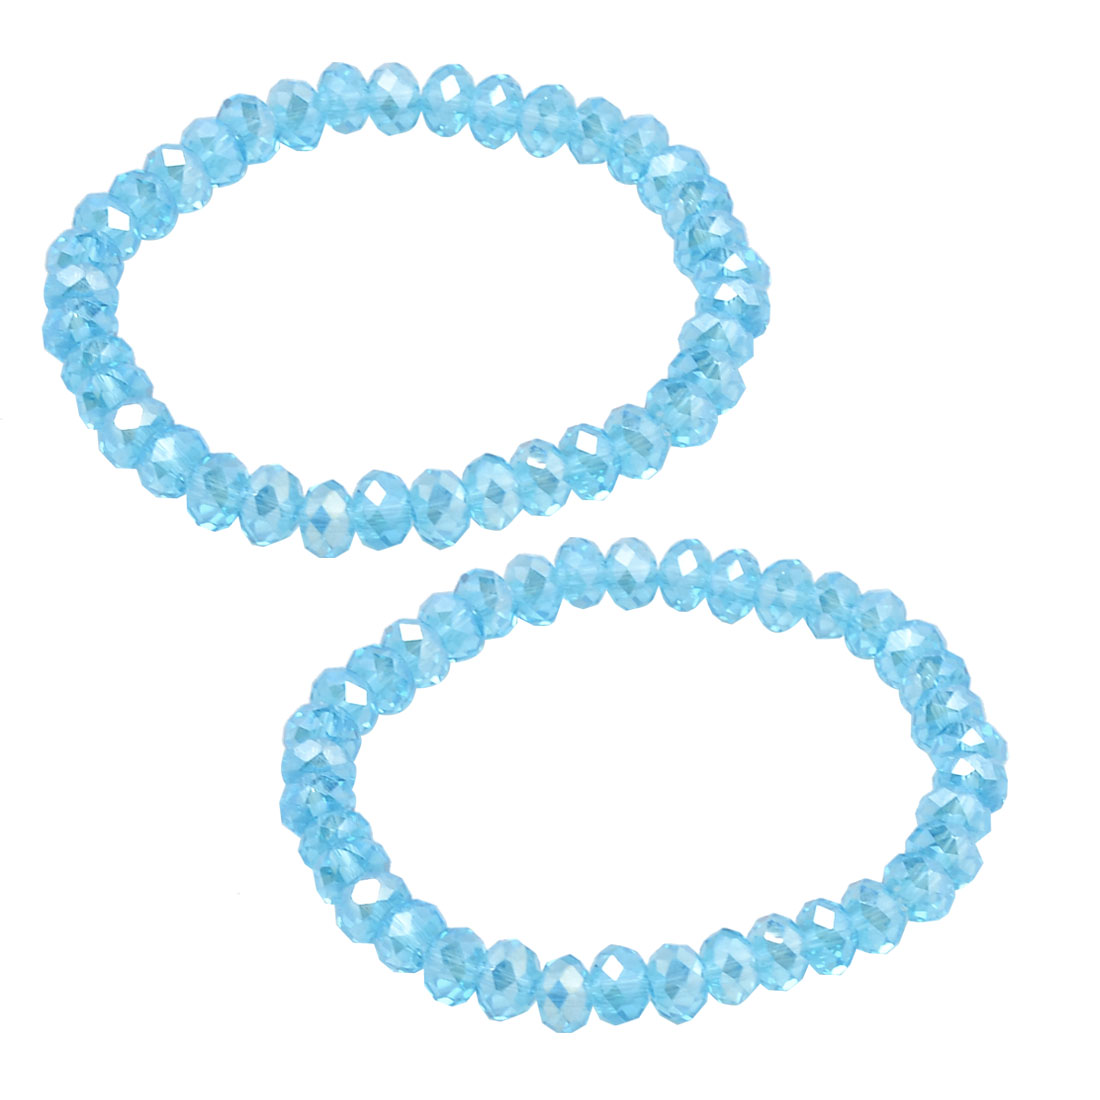 2 Pcs Lady 6mm Dia Plastic Crystal Beaded Stretch Bracelets Bangle Sky Blue